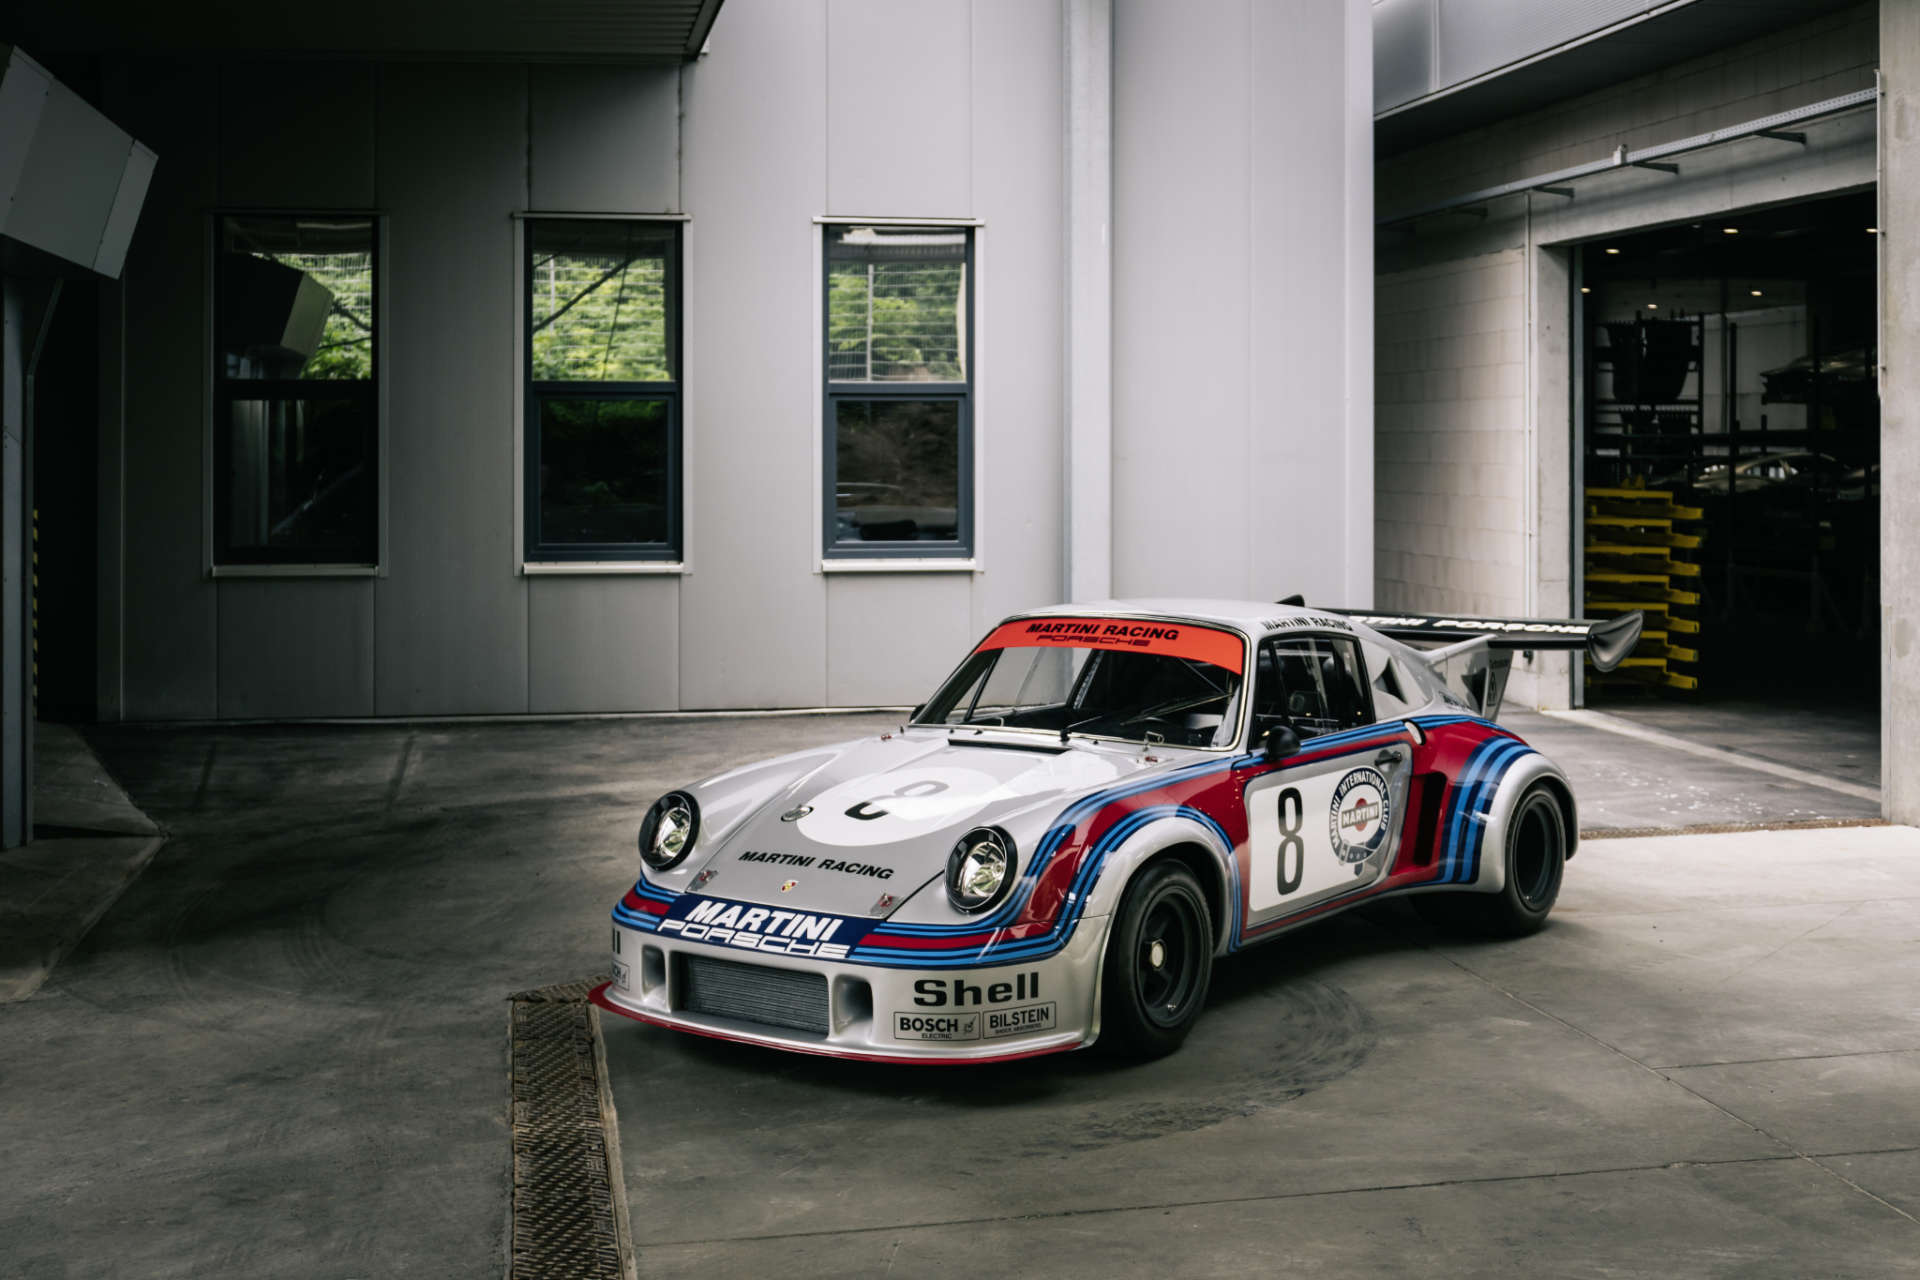 Porsche 911 Carrera RSR 2.1 Turbo